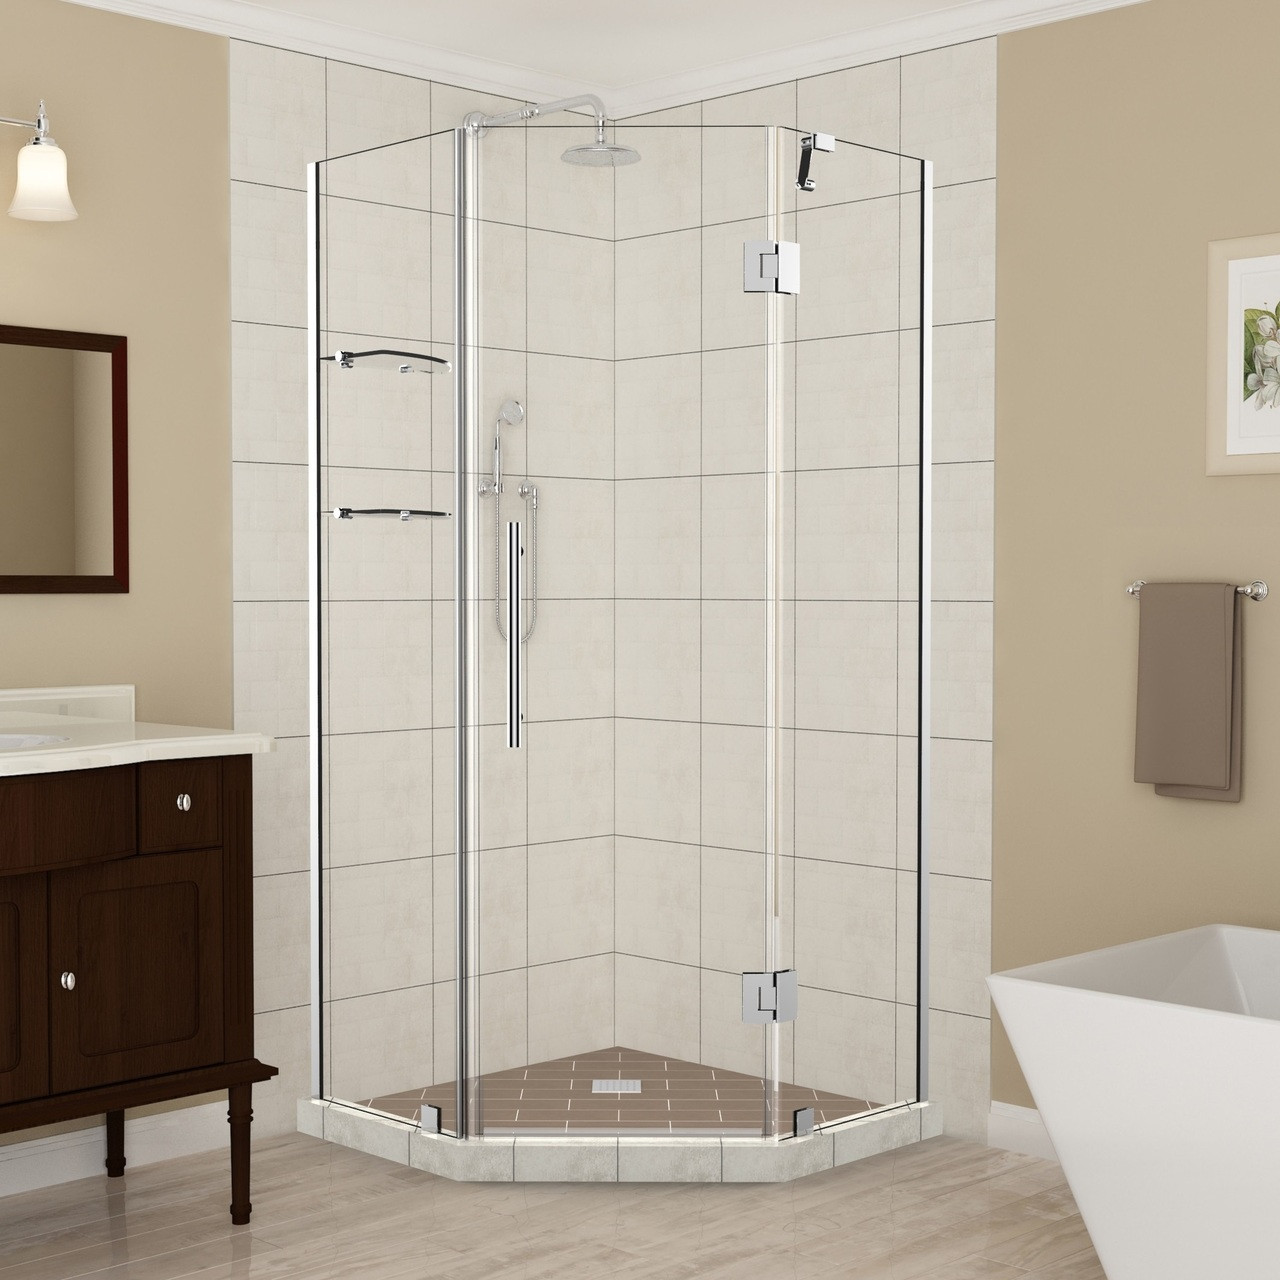 Sen961 Merrick Gs Frameless Neo Angle Shower Enclosure